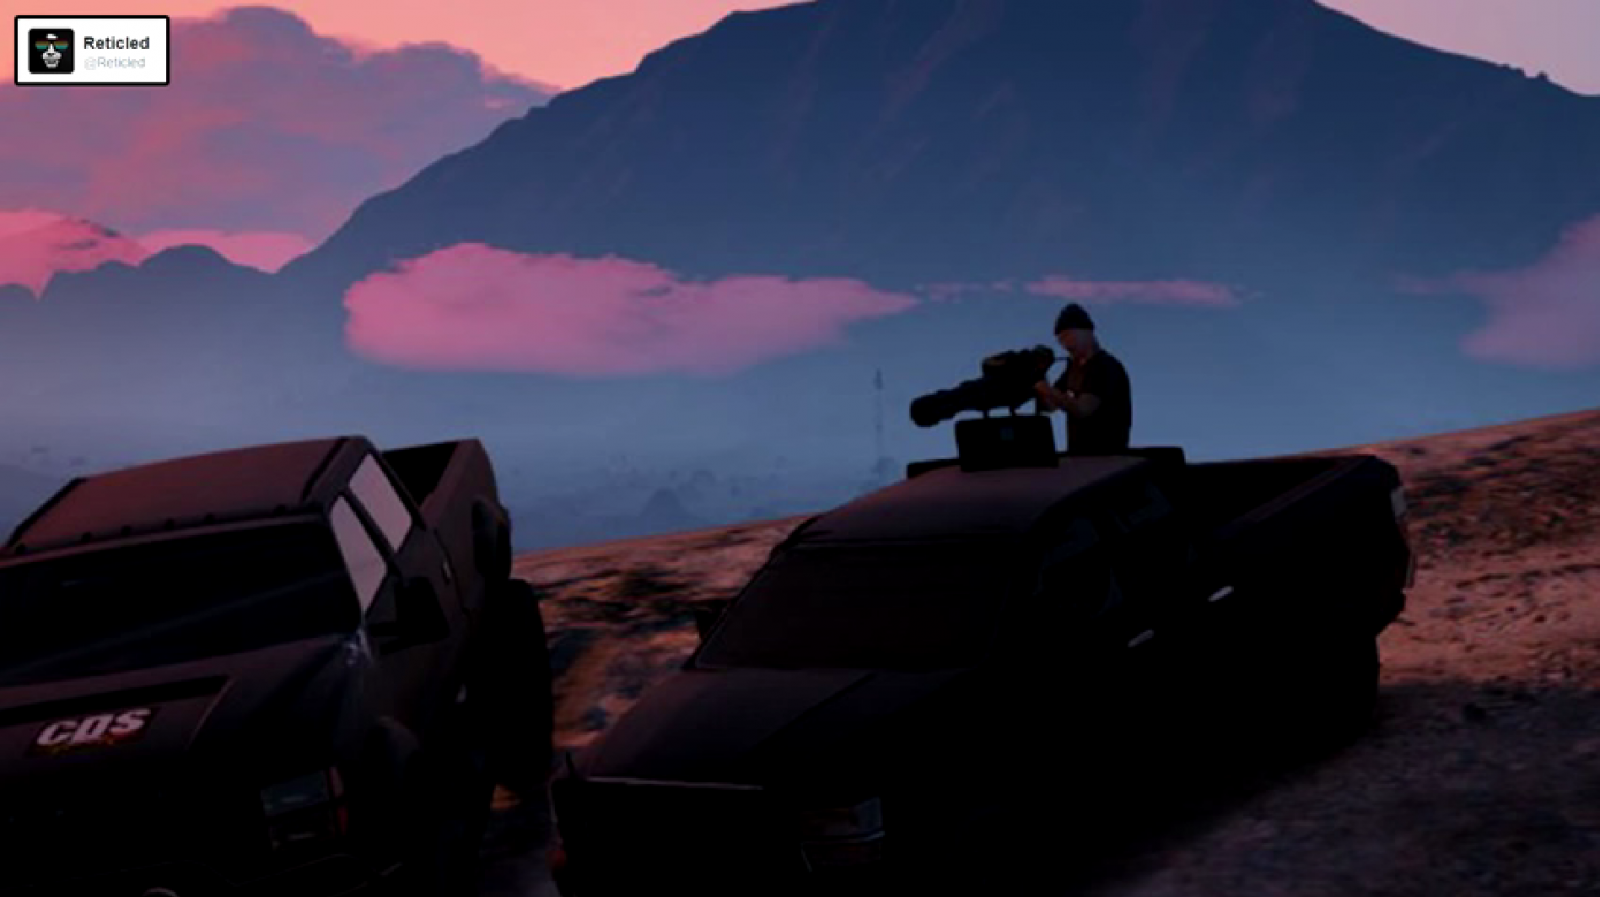 GTA 5 Online: Heist DLC vehicles with mounted mini-guns revealed